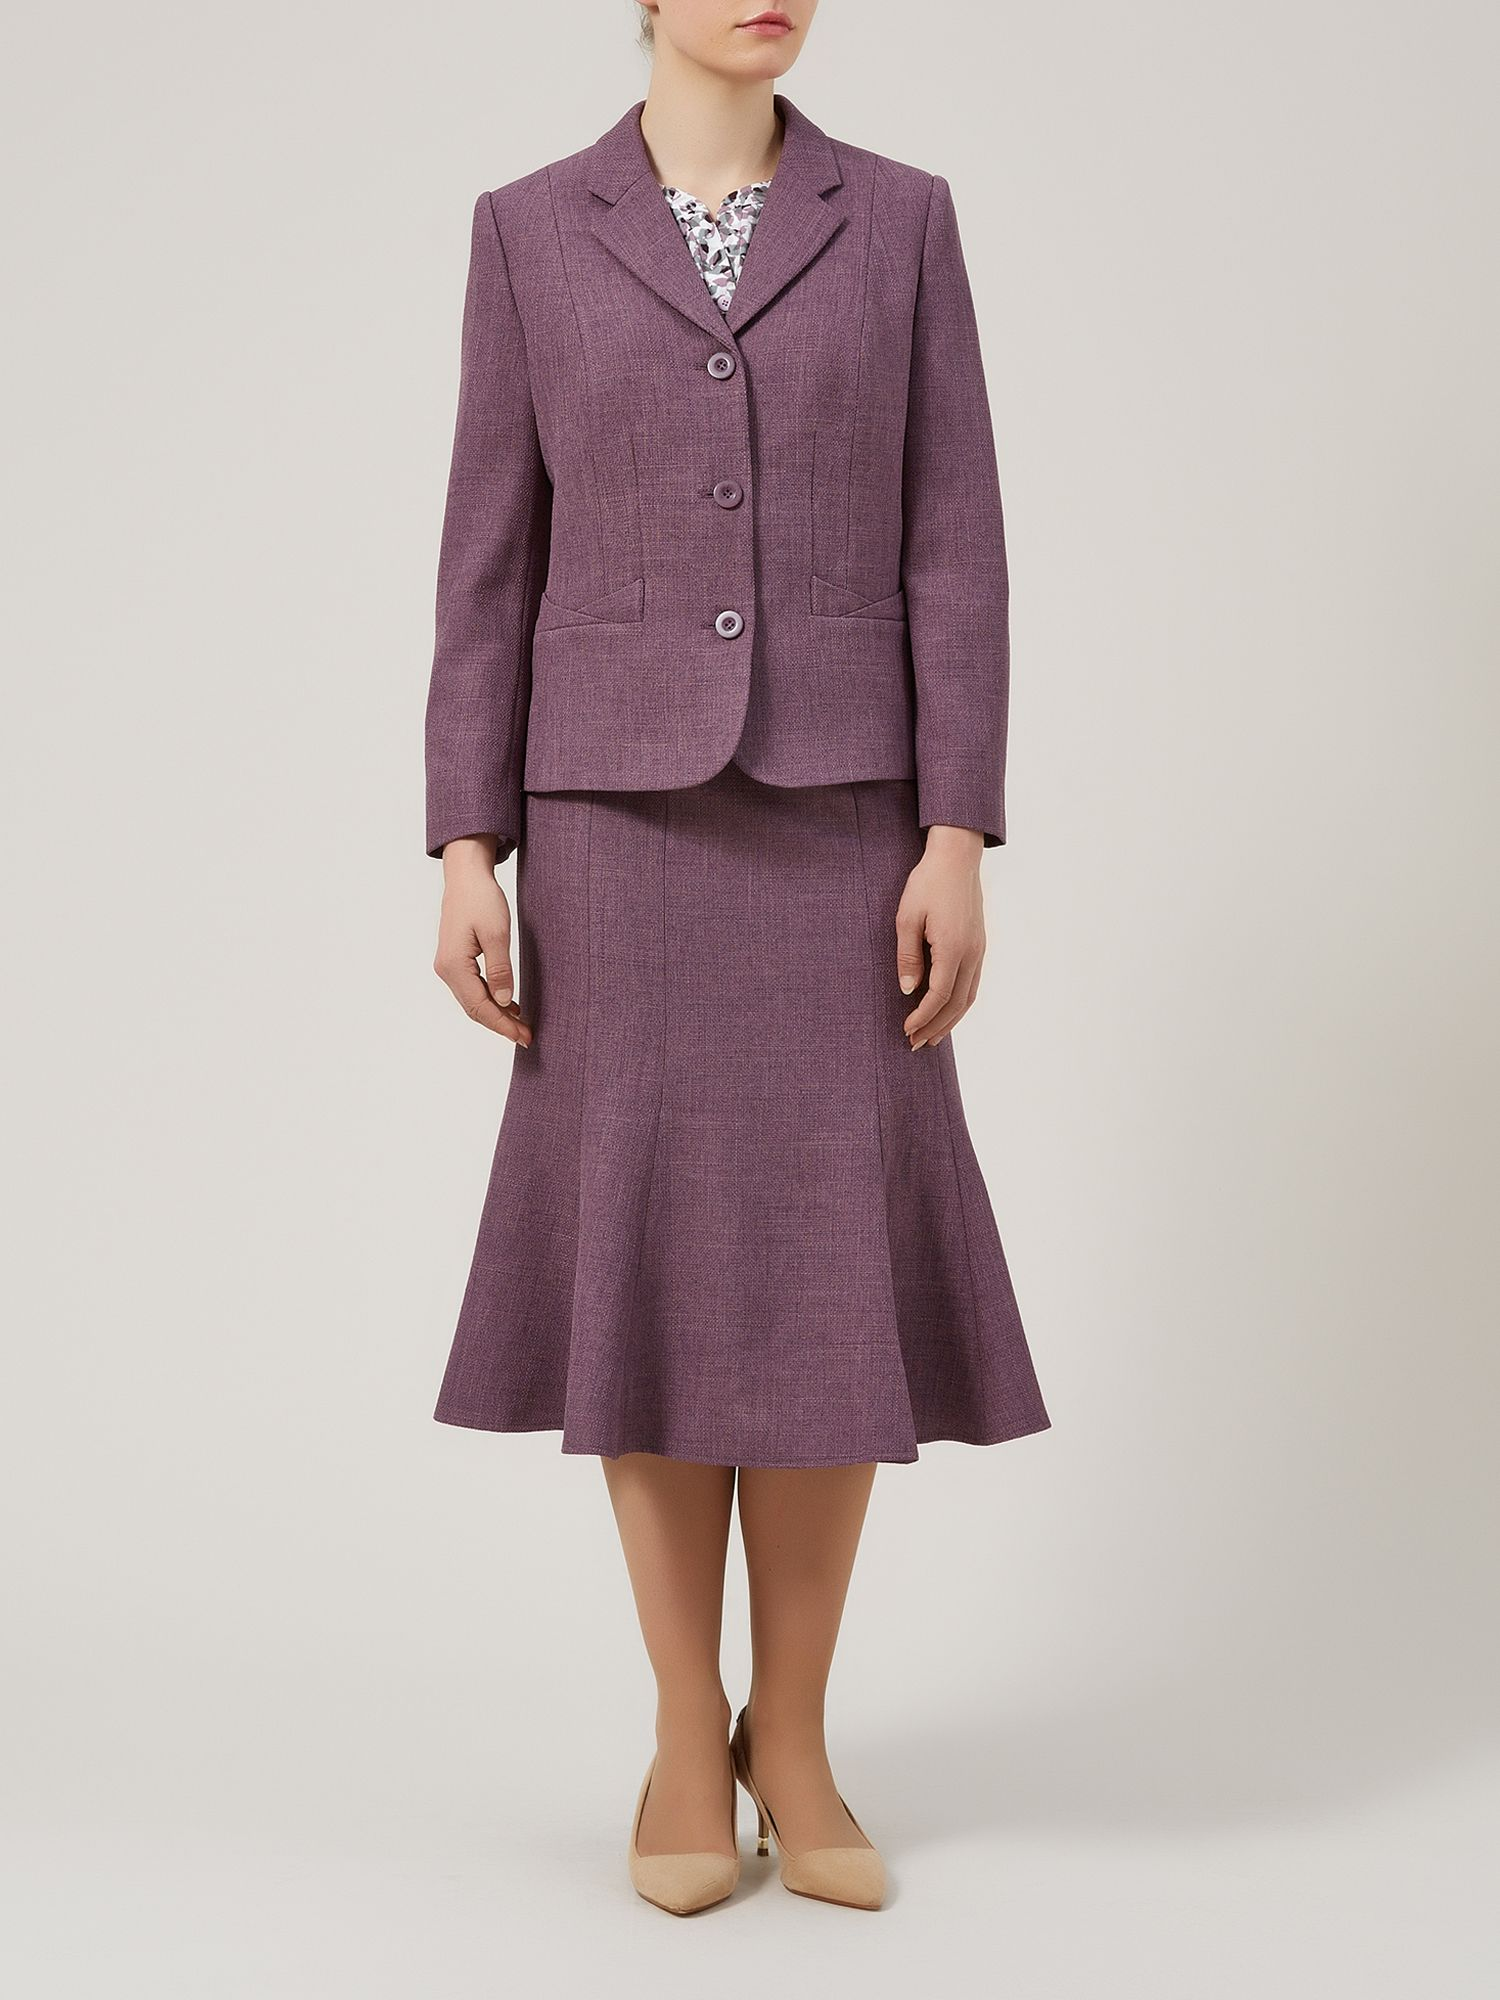 Heather basket weave jacket